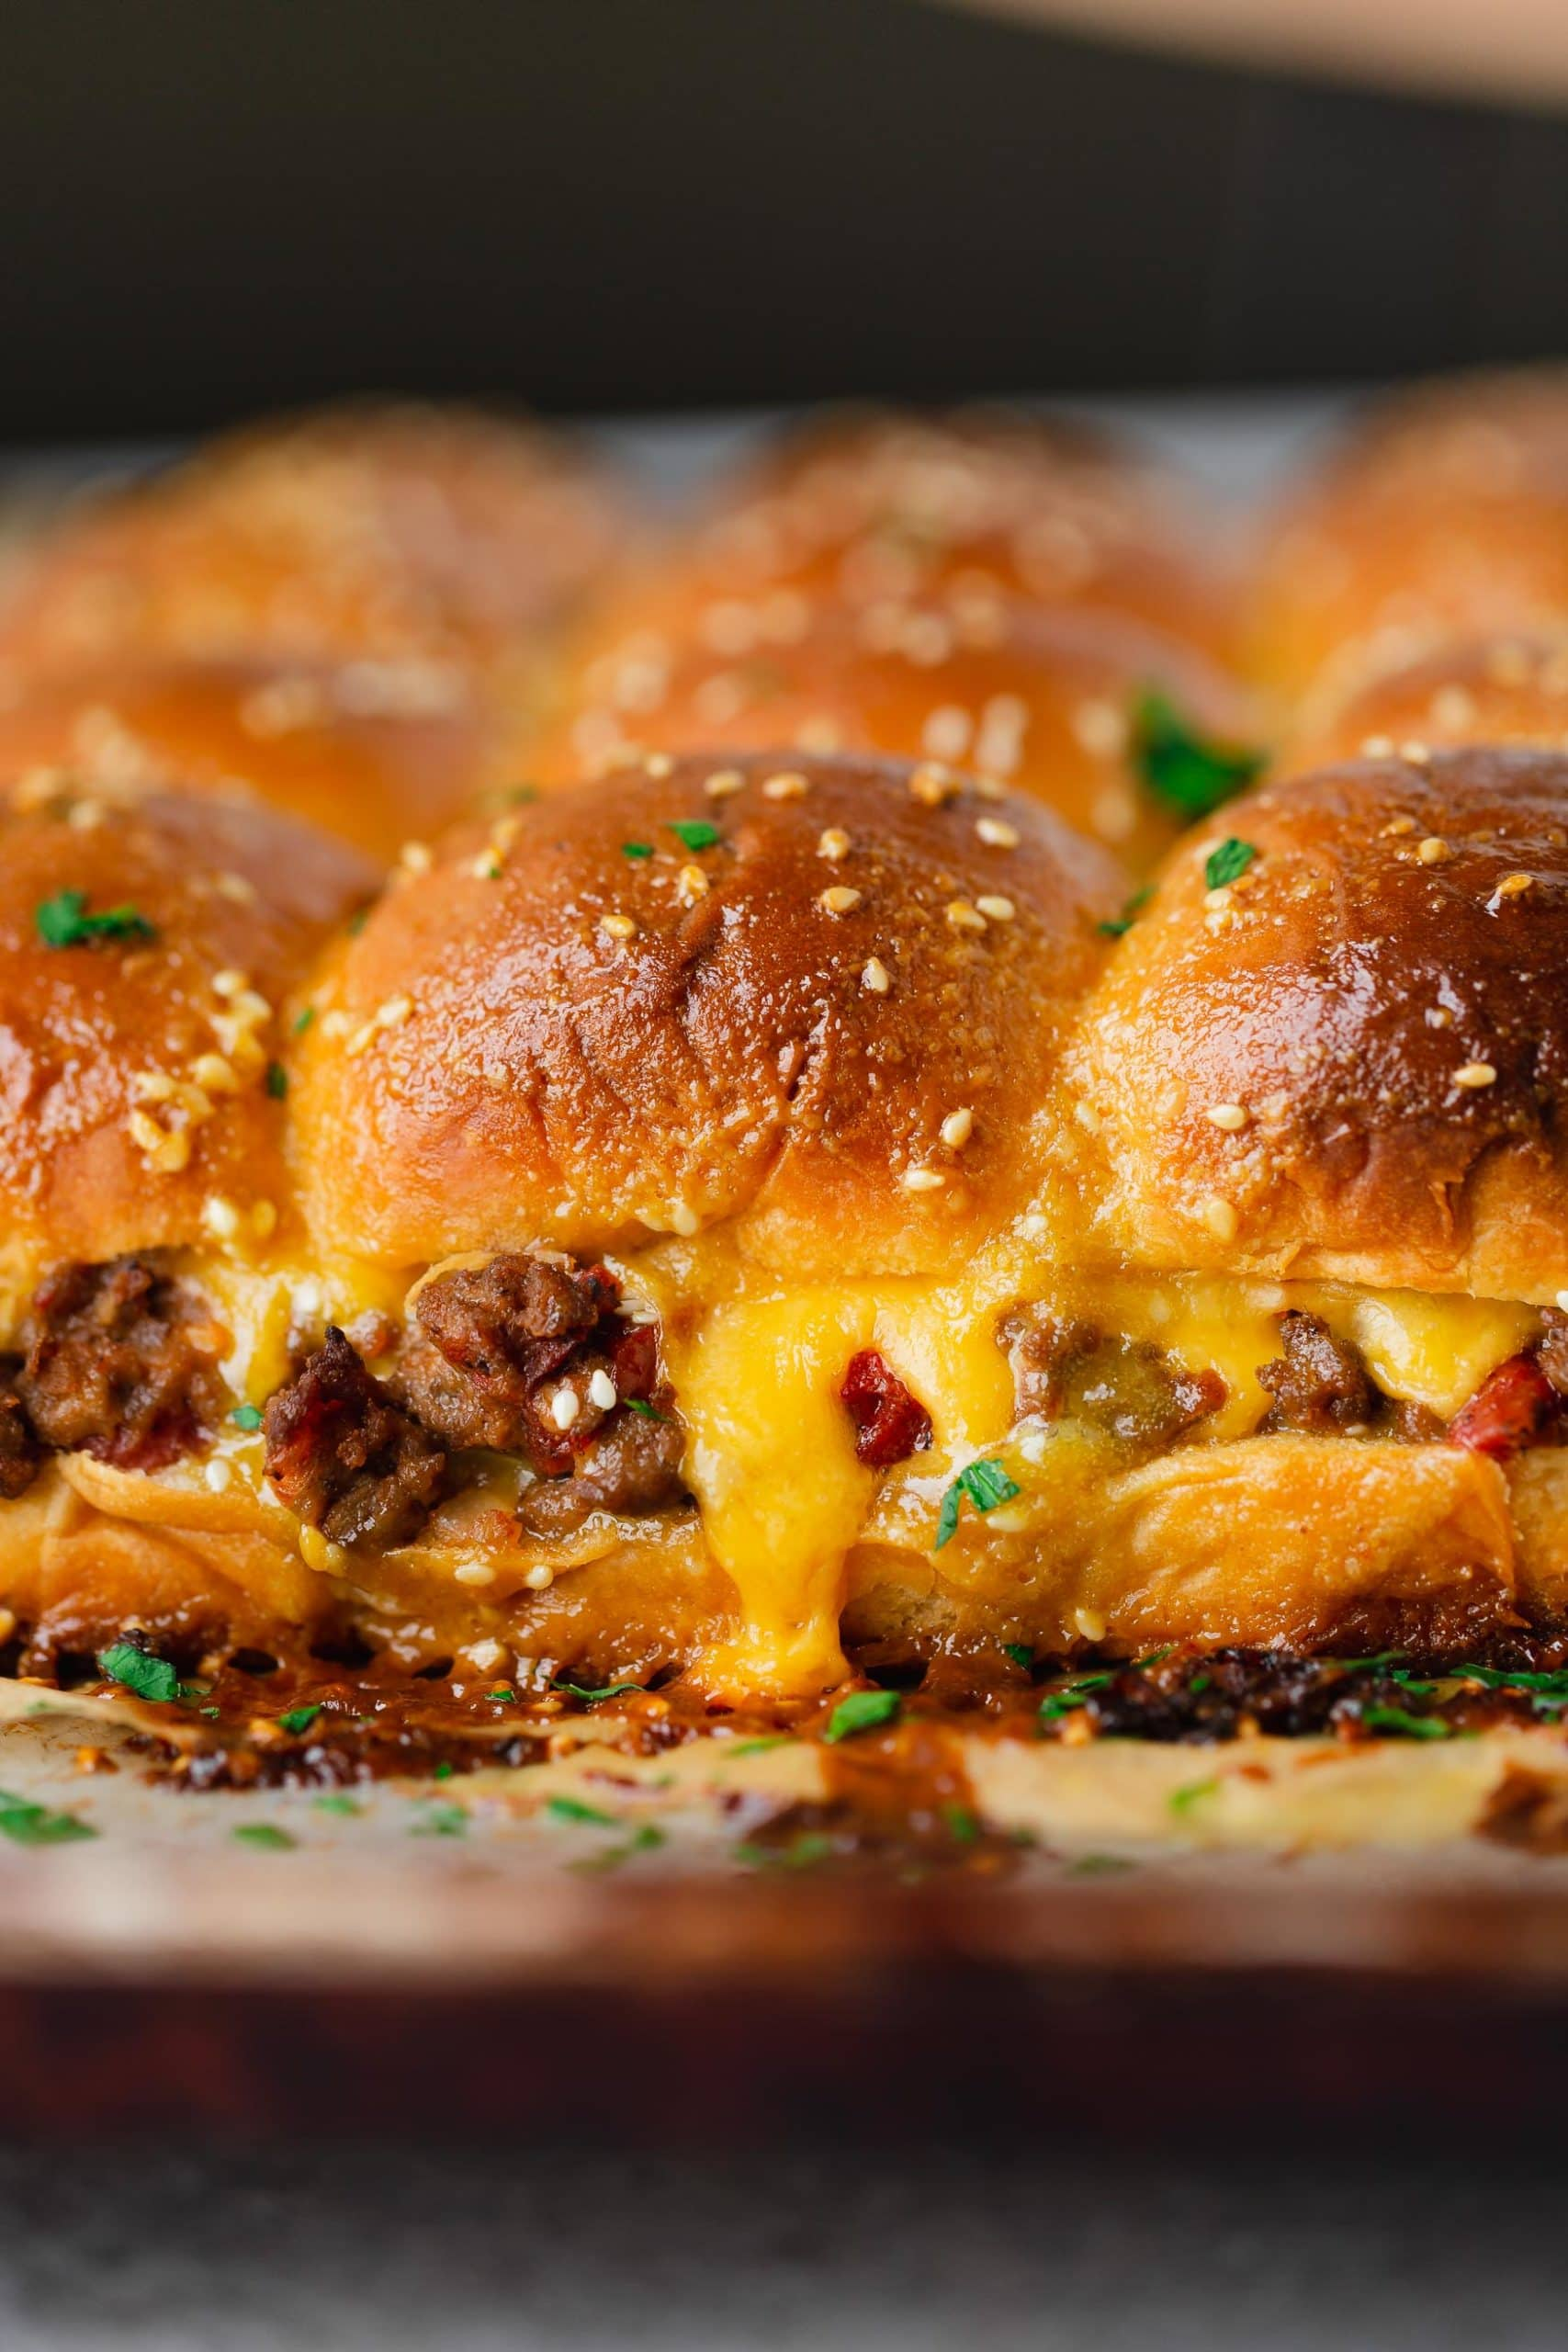 A panful of cheeseburger sliders. There is ground beef, chopped tomatoes and melted cheese on the buns and the buns are topped with sesame seeds and sauce.